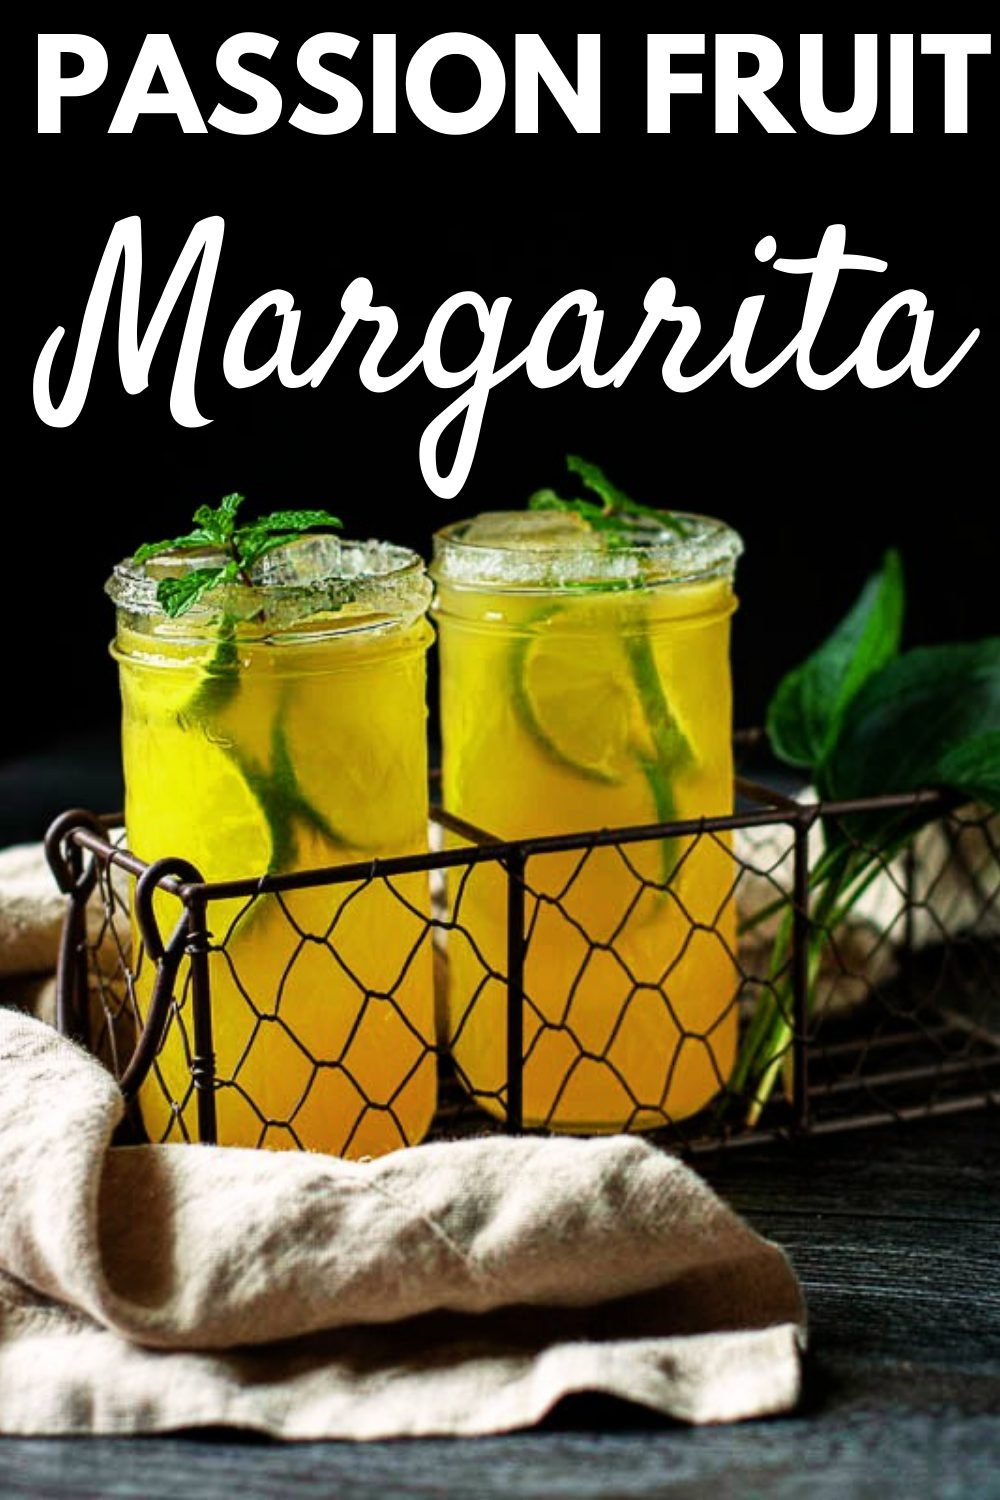 This passion fruit margarita is full of passion fruit flavor and sweetness, bright citrus lime, & a punch of tequila making it a great holiday drink. Do give it a try! Full recipe and tips available on our site. via @jennymelrose